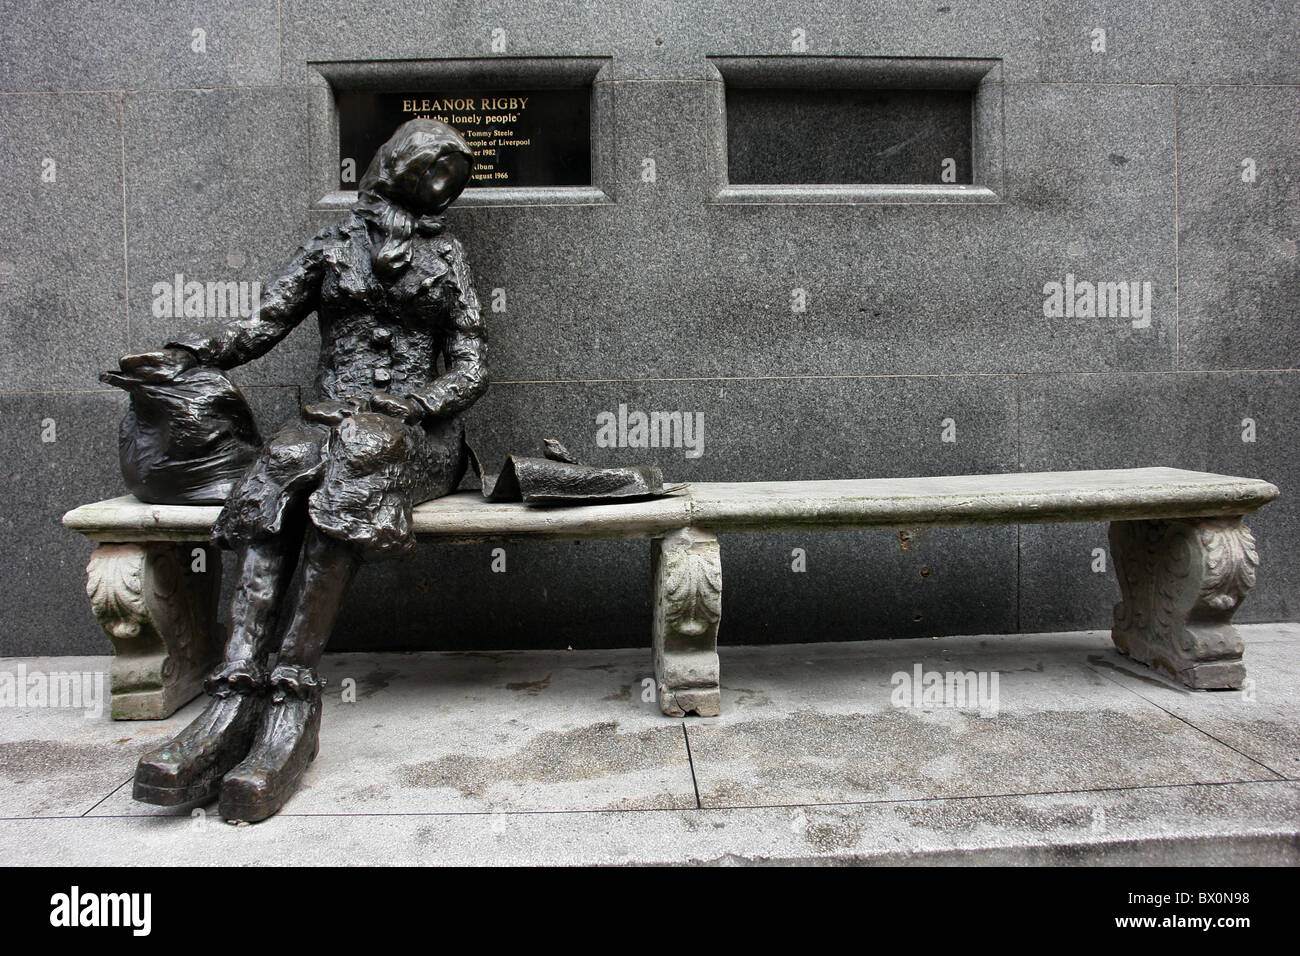 Statue Of U0027Eleanor Rigbyu0027 Sculptured By Tommy Steele And Situated In  Stanley St,